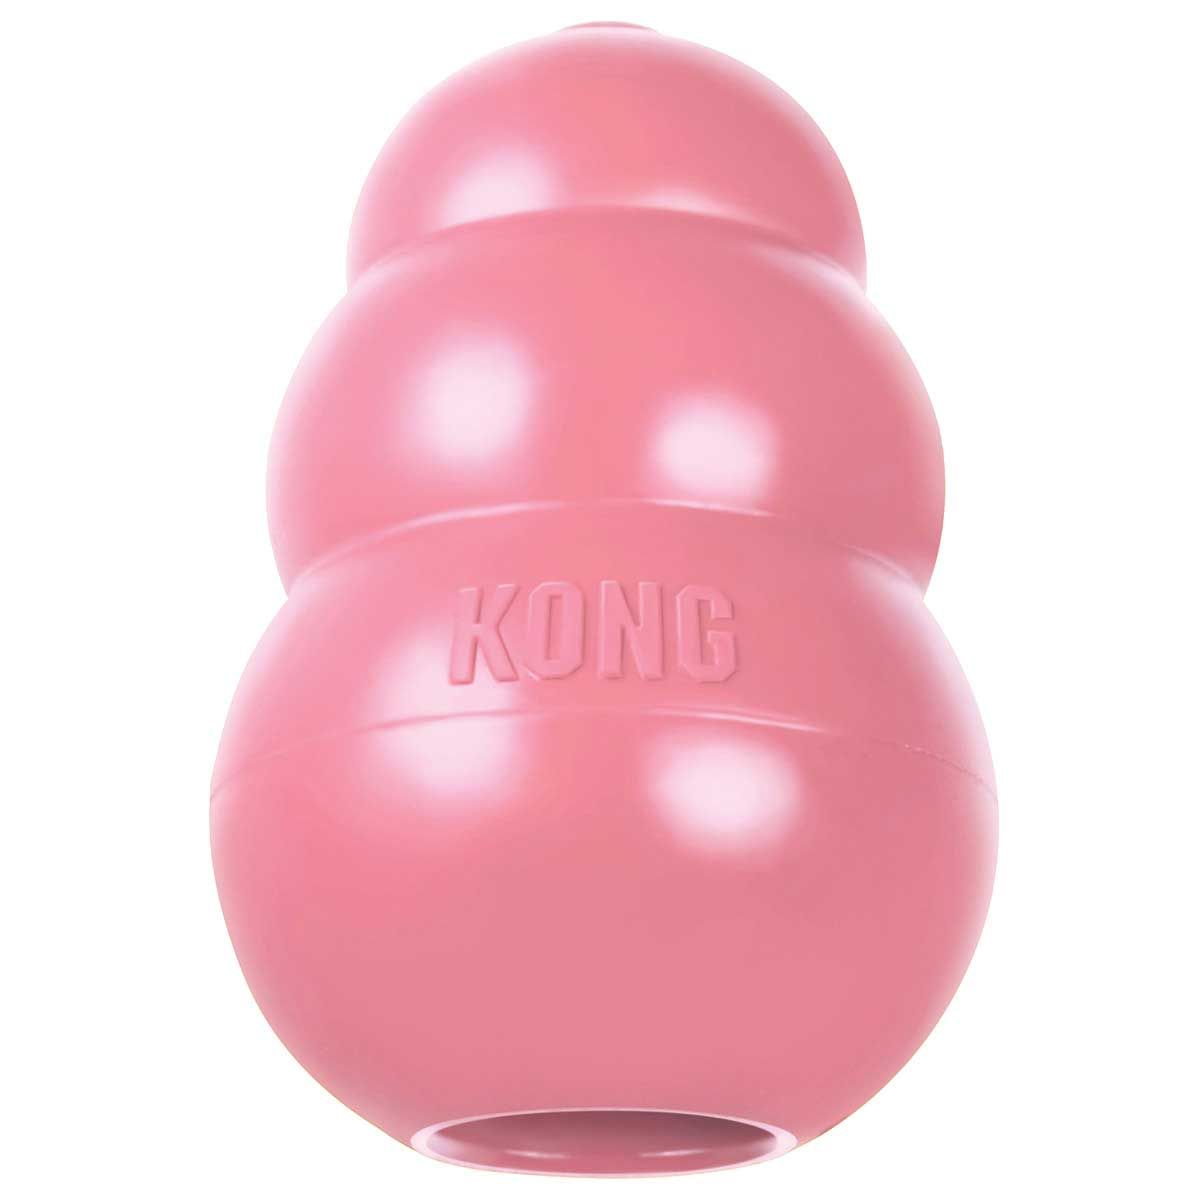 Large Puppy KONG Toy